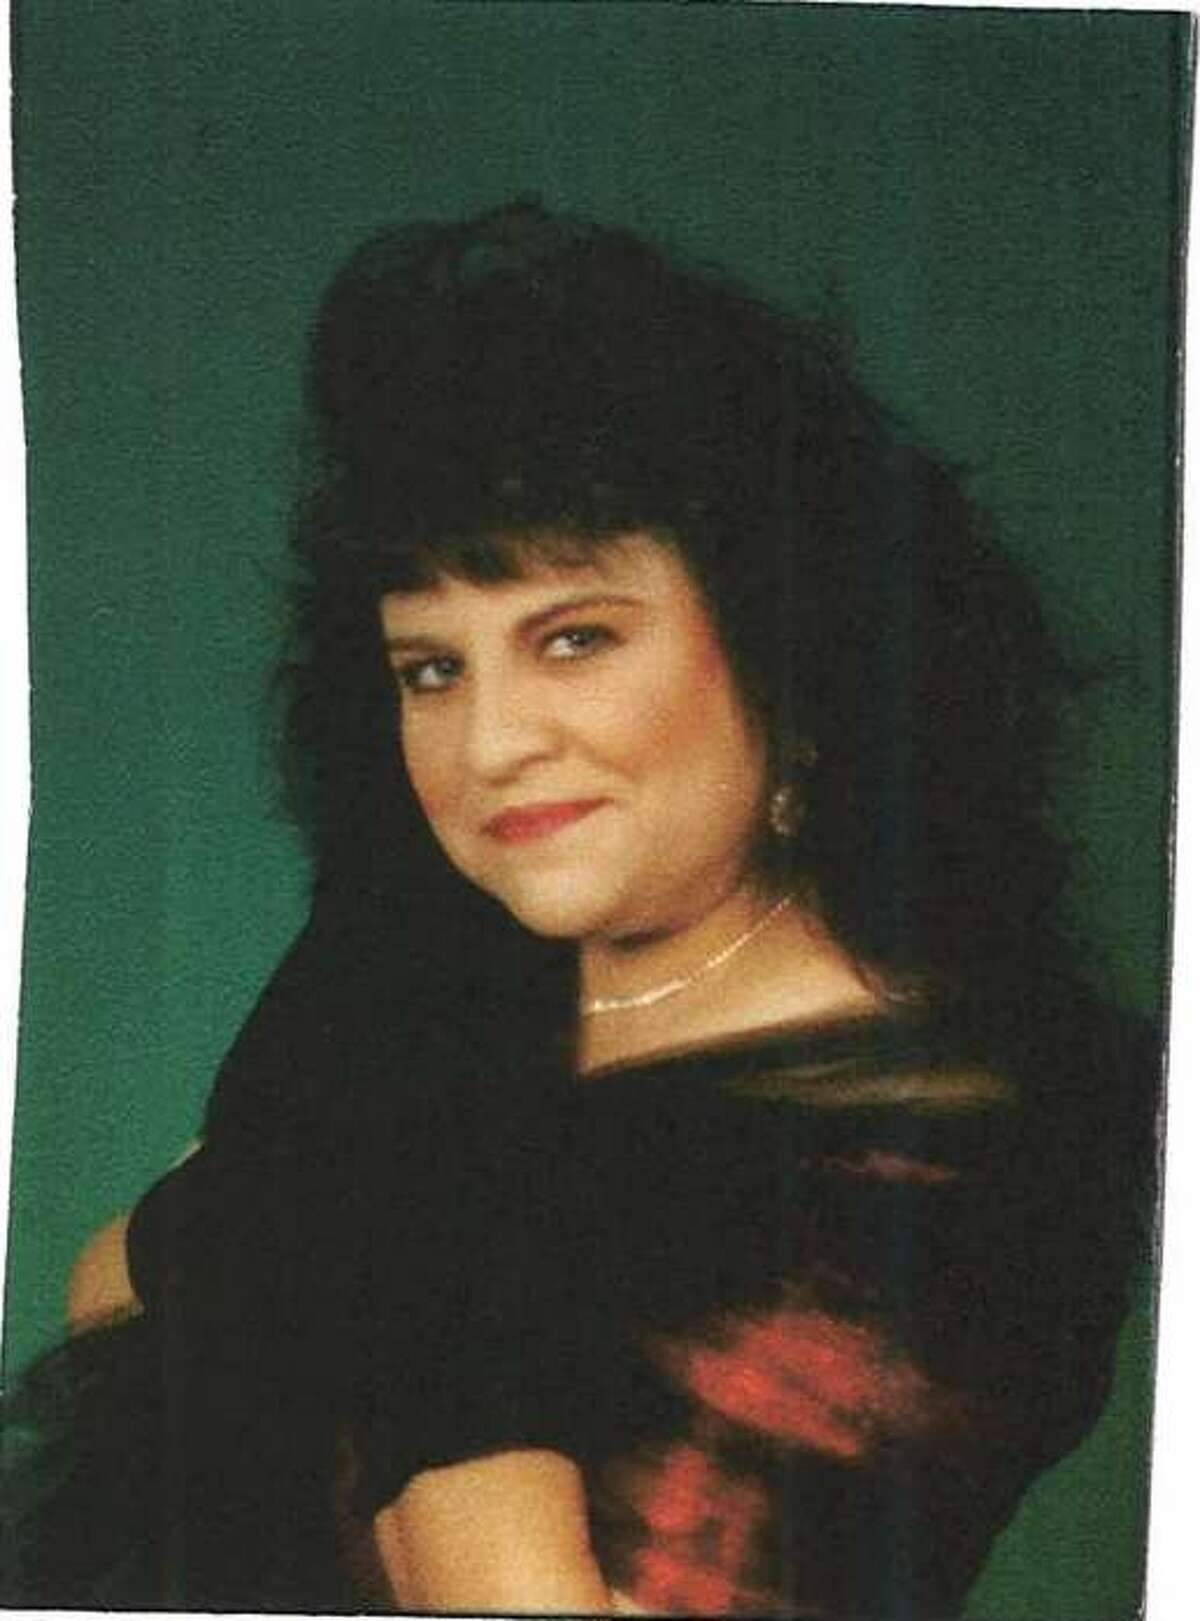 Herlinda Garcia in better times in 2006, when she had flowing, jet black hair that reached her back.